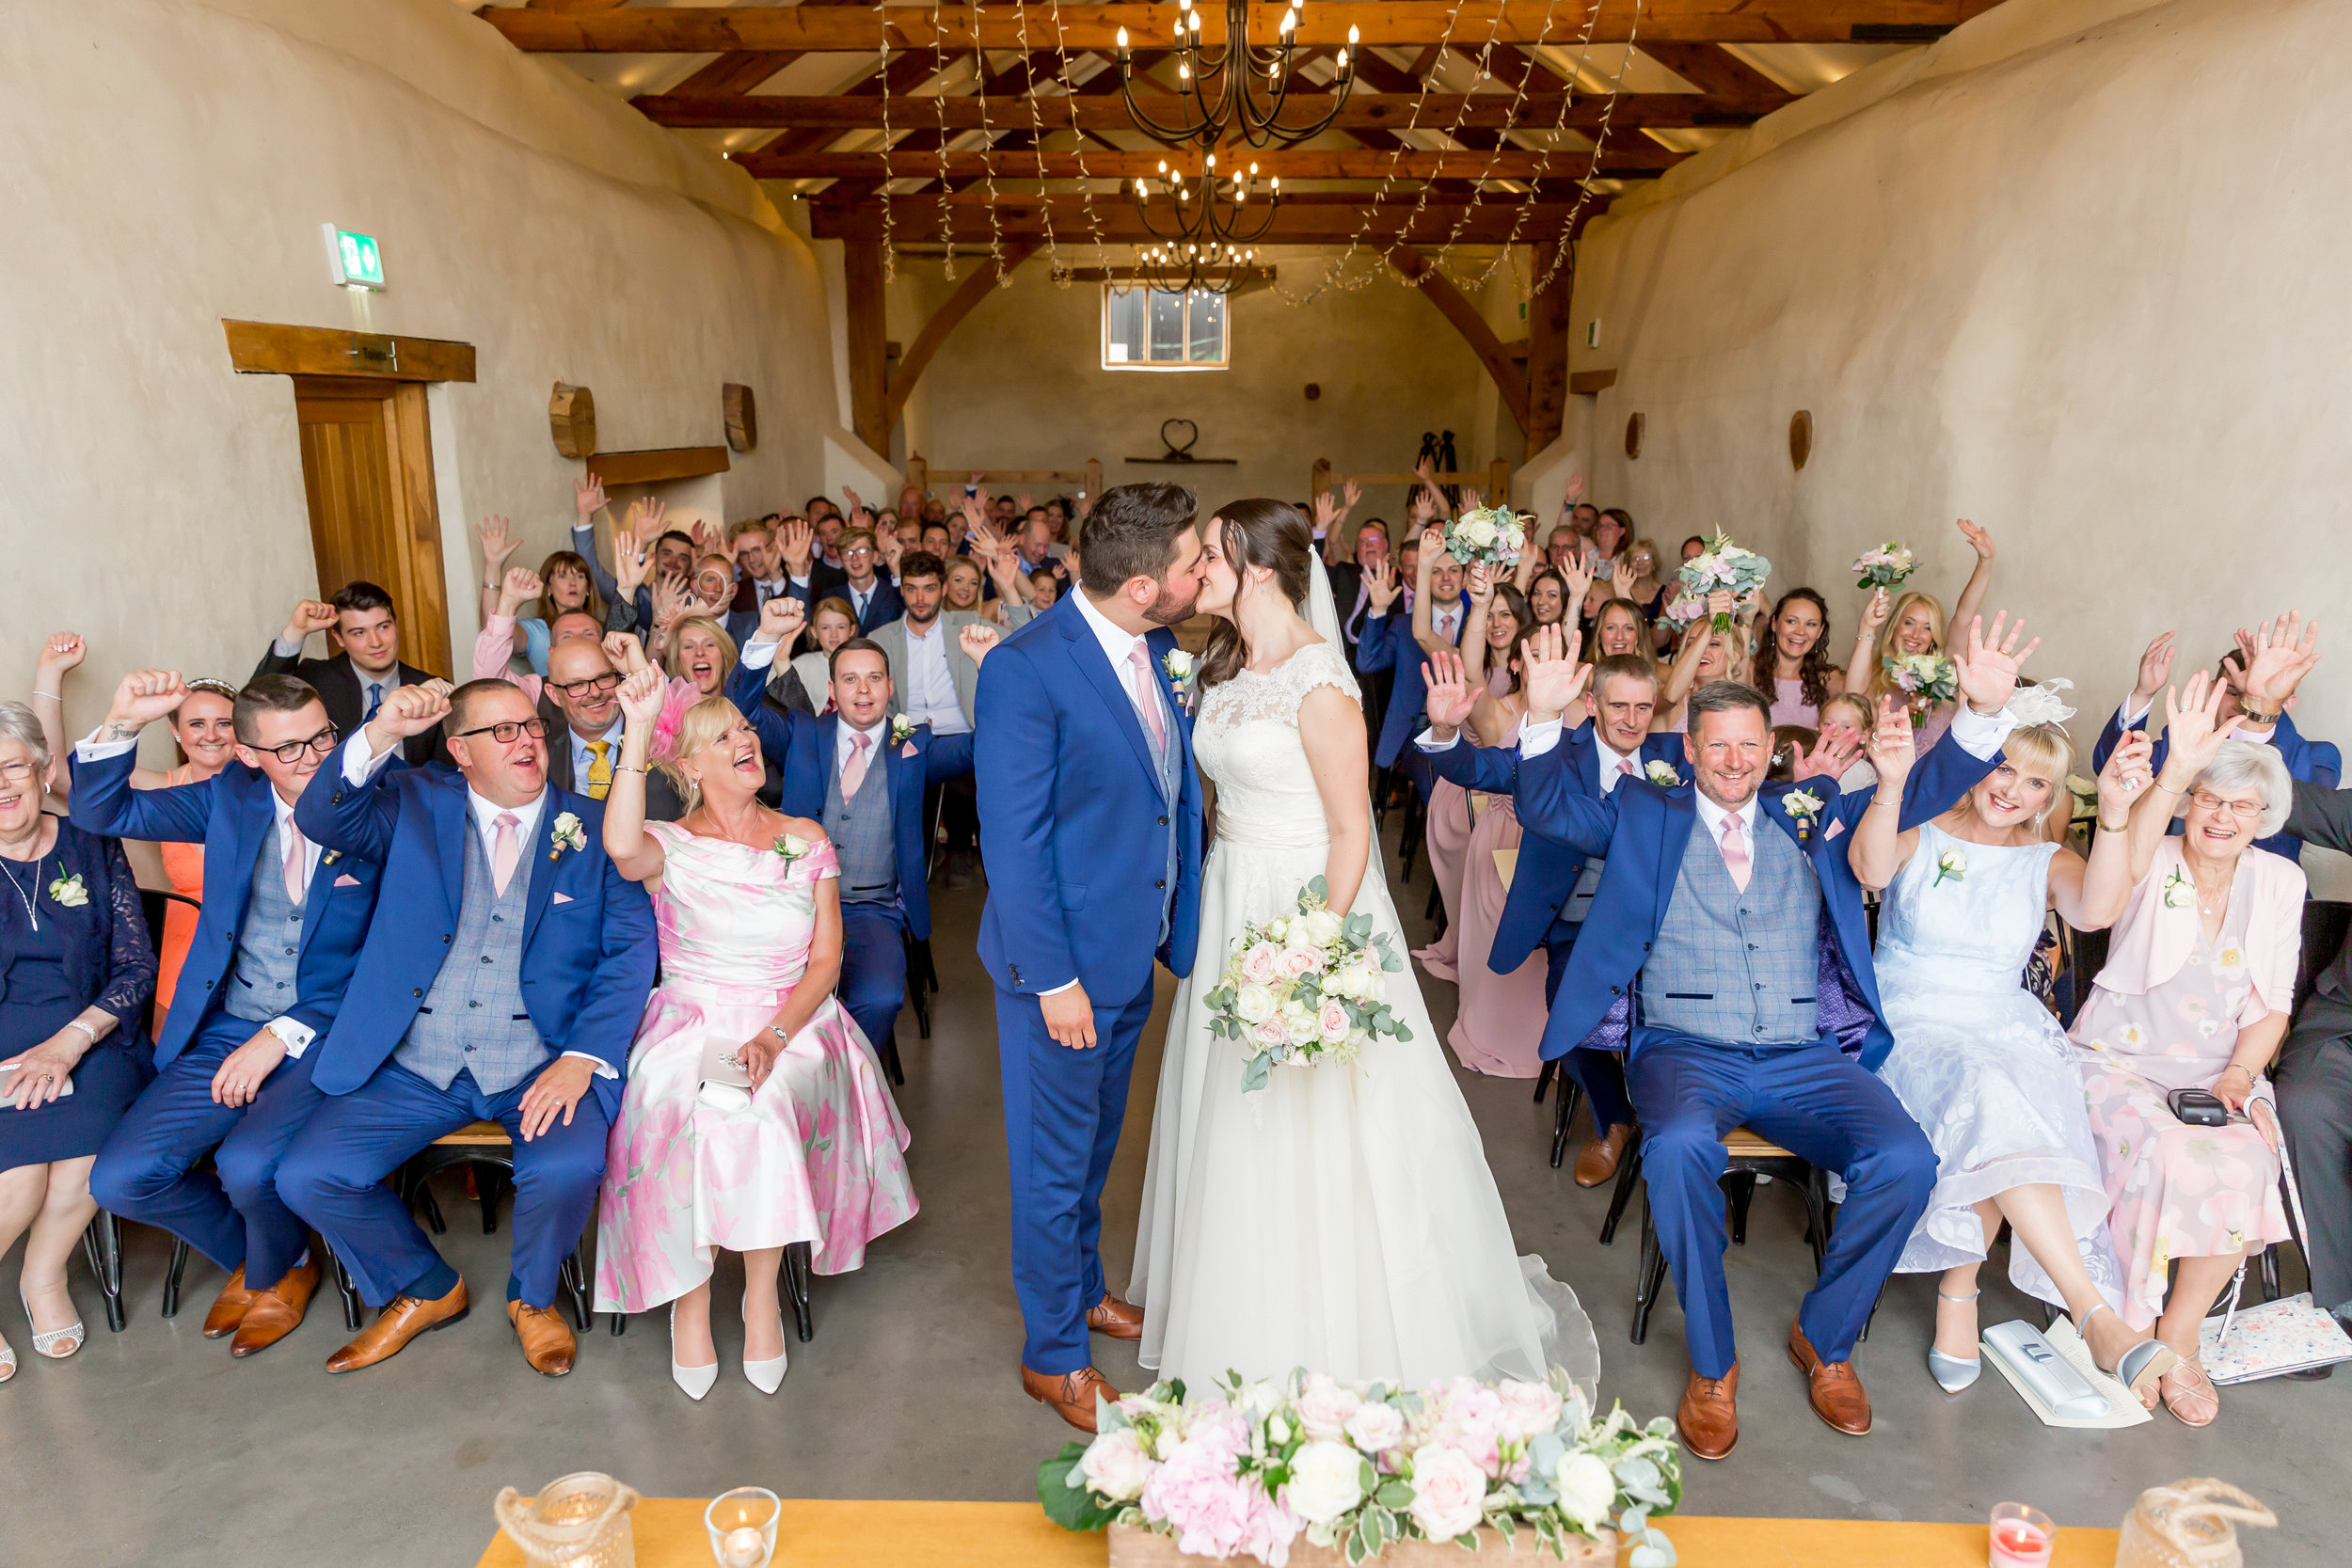 barn wedding ideas in devon.jpg